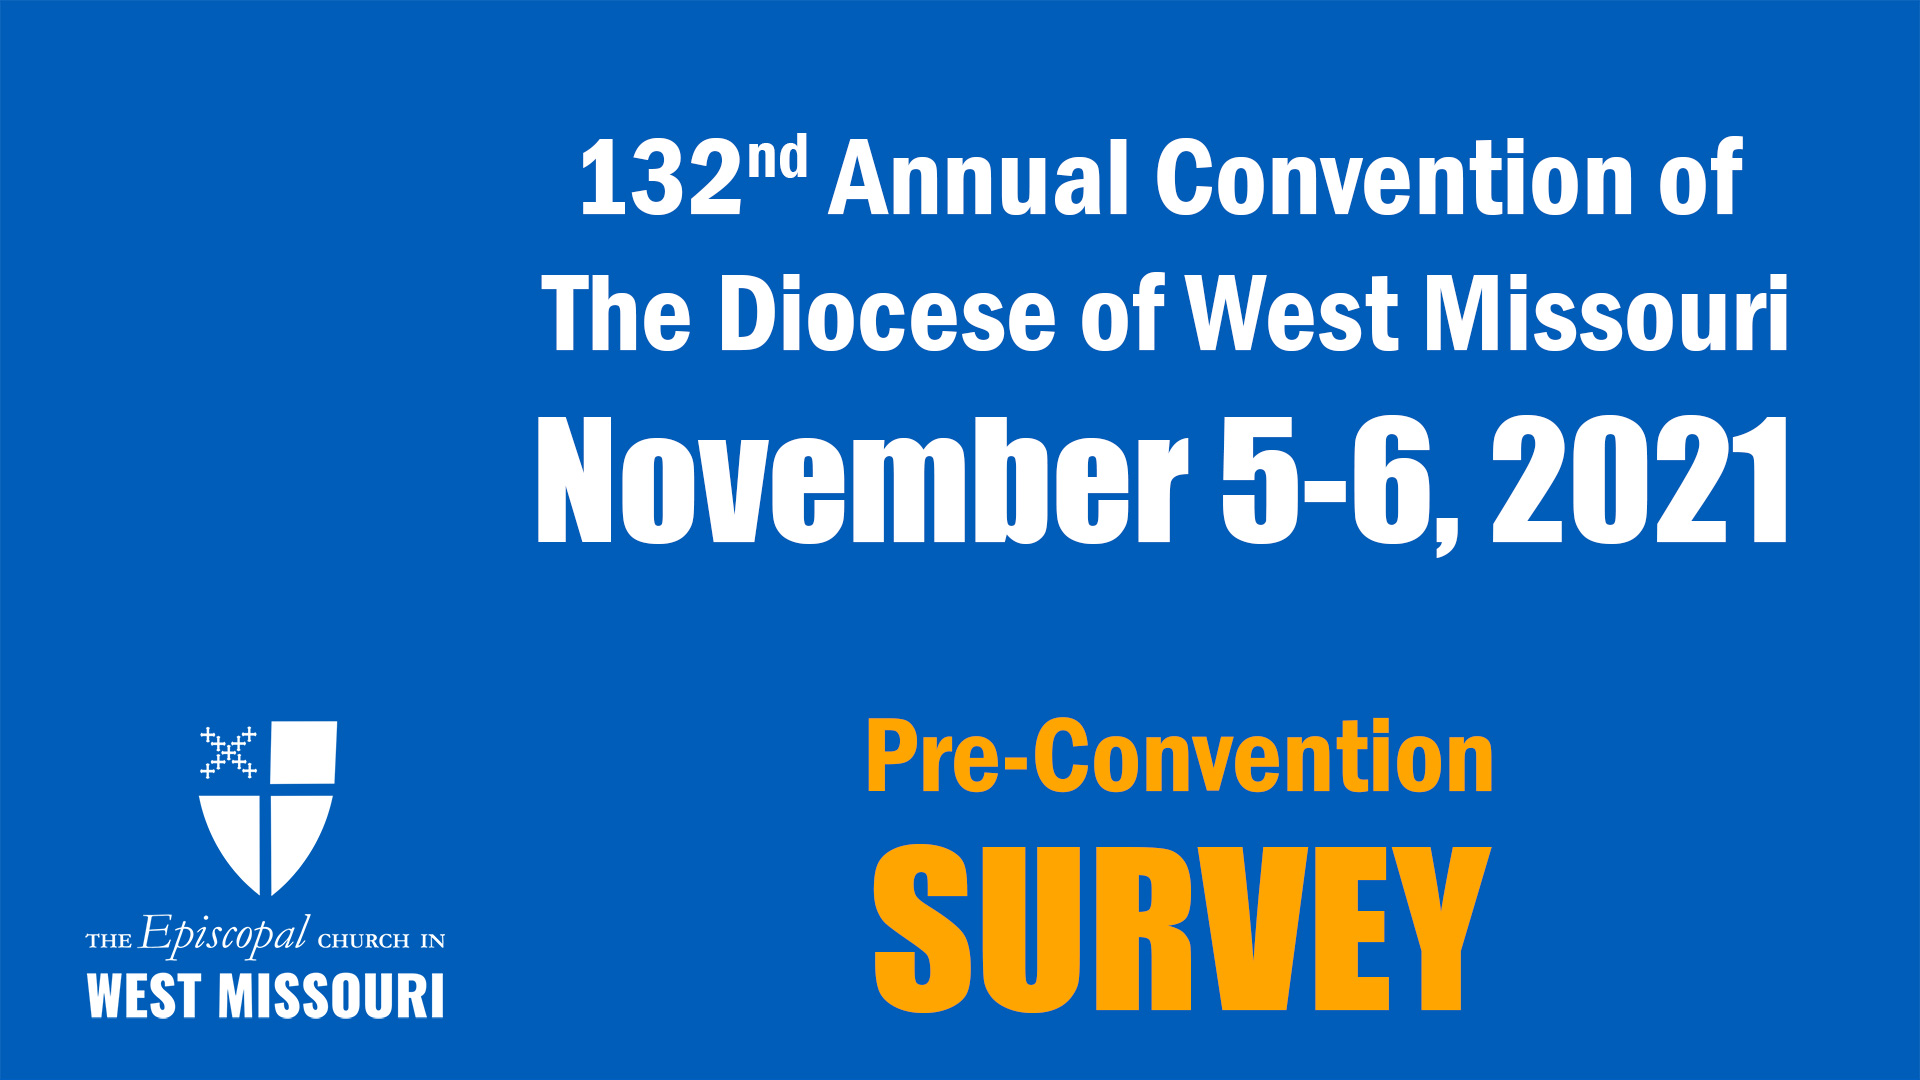 132<sup>nd</sup> Annual Convention of The Diocese of West Missouri,November 5-6, 2021